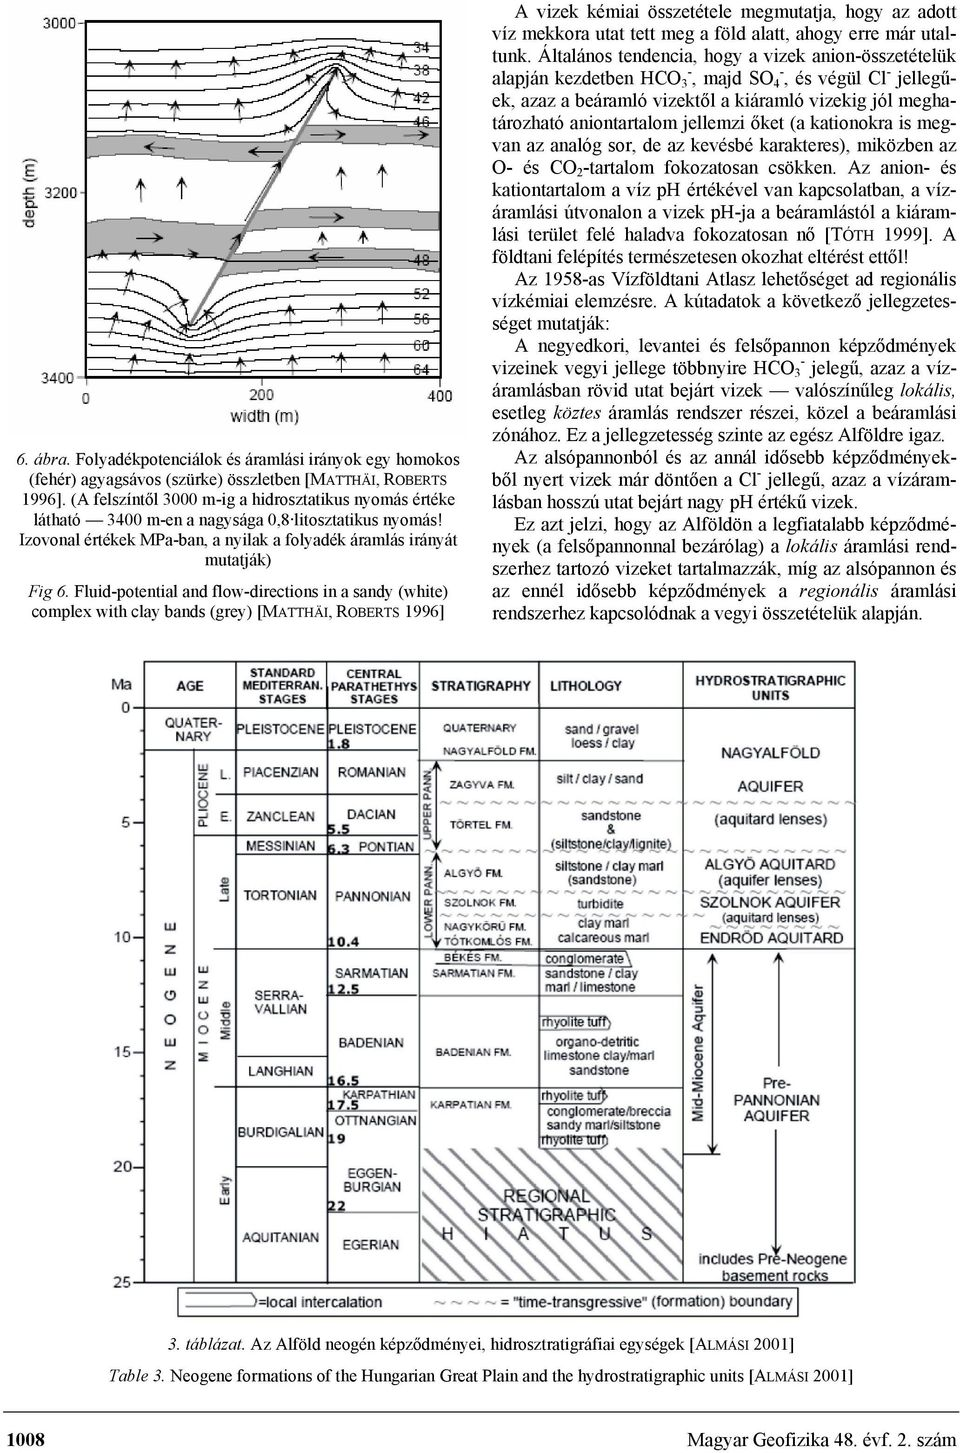 Fluid-potential and flow-directions in a sandy (white) complex with clay bands (grey) [MATTHÄI, ROBERTS 1996] A vizek kémiai összetétele megmutatja, hogy az adott víz mekkora utat tett meg a föld